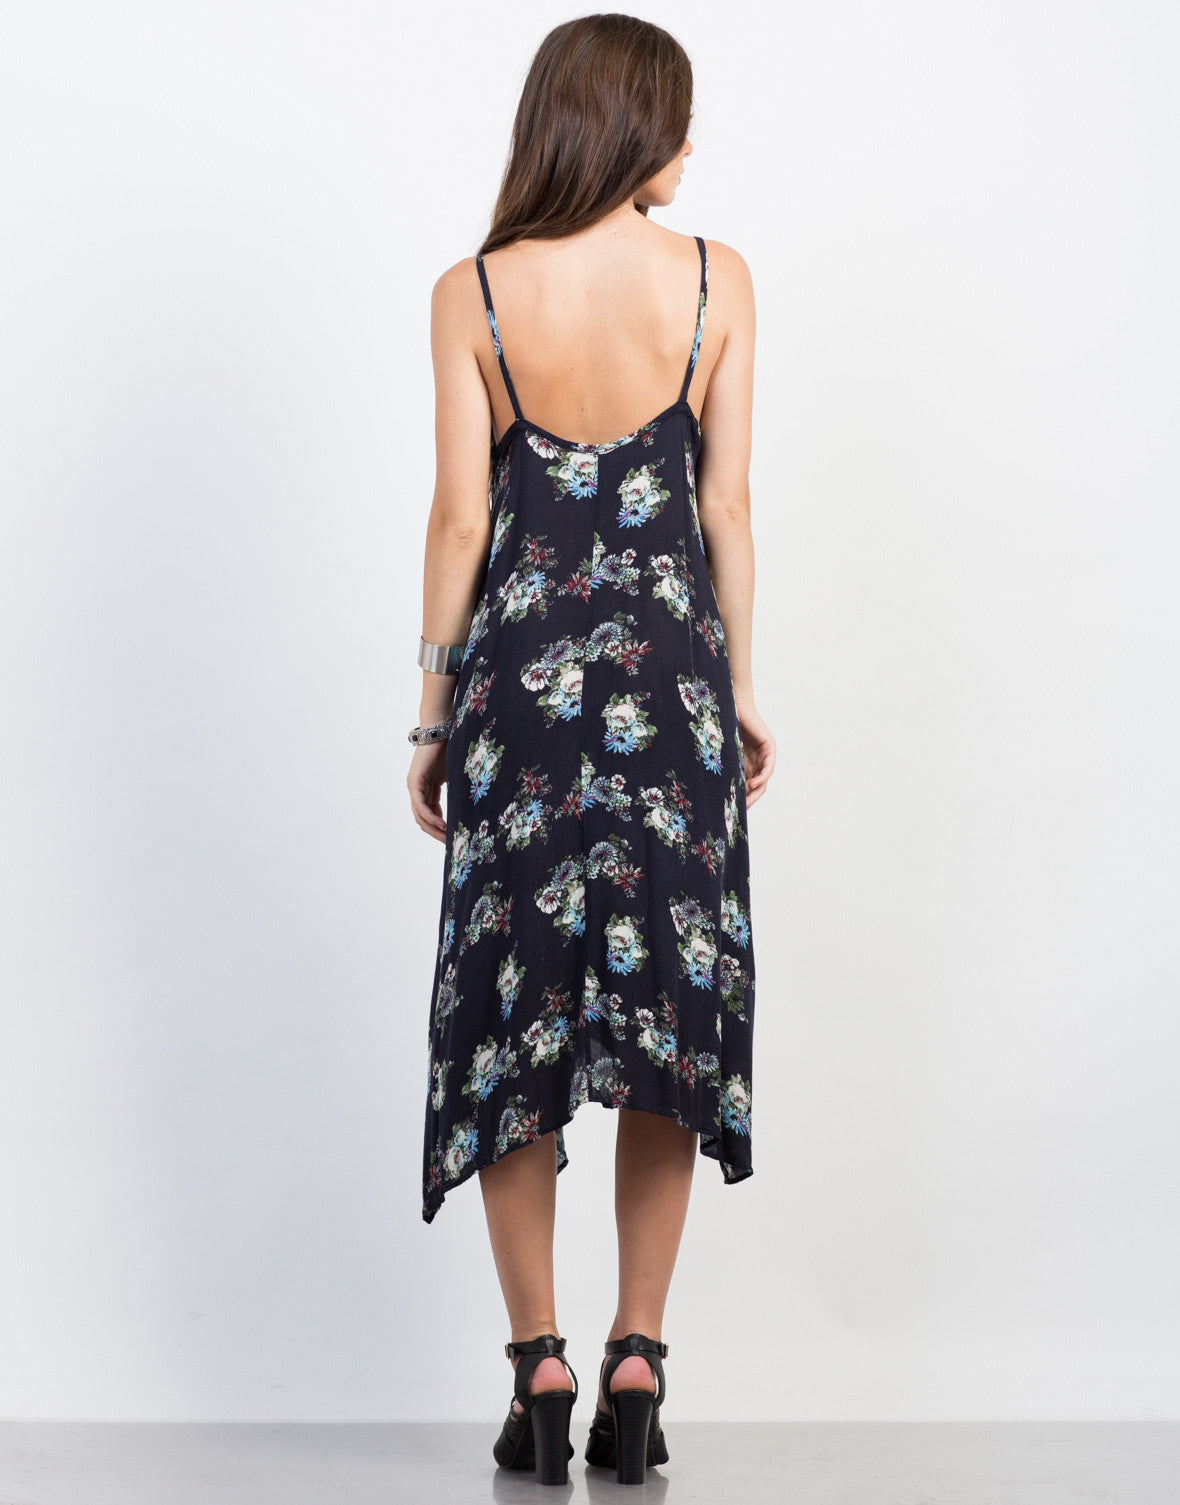 Back View of Floral Print Midi Dress